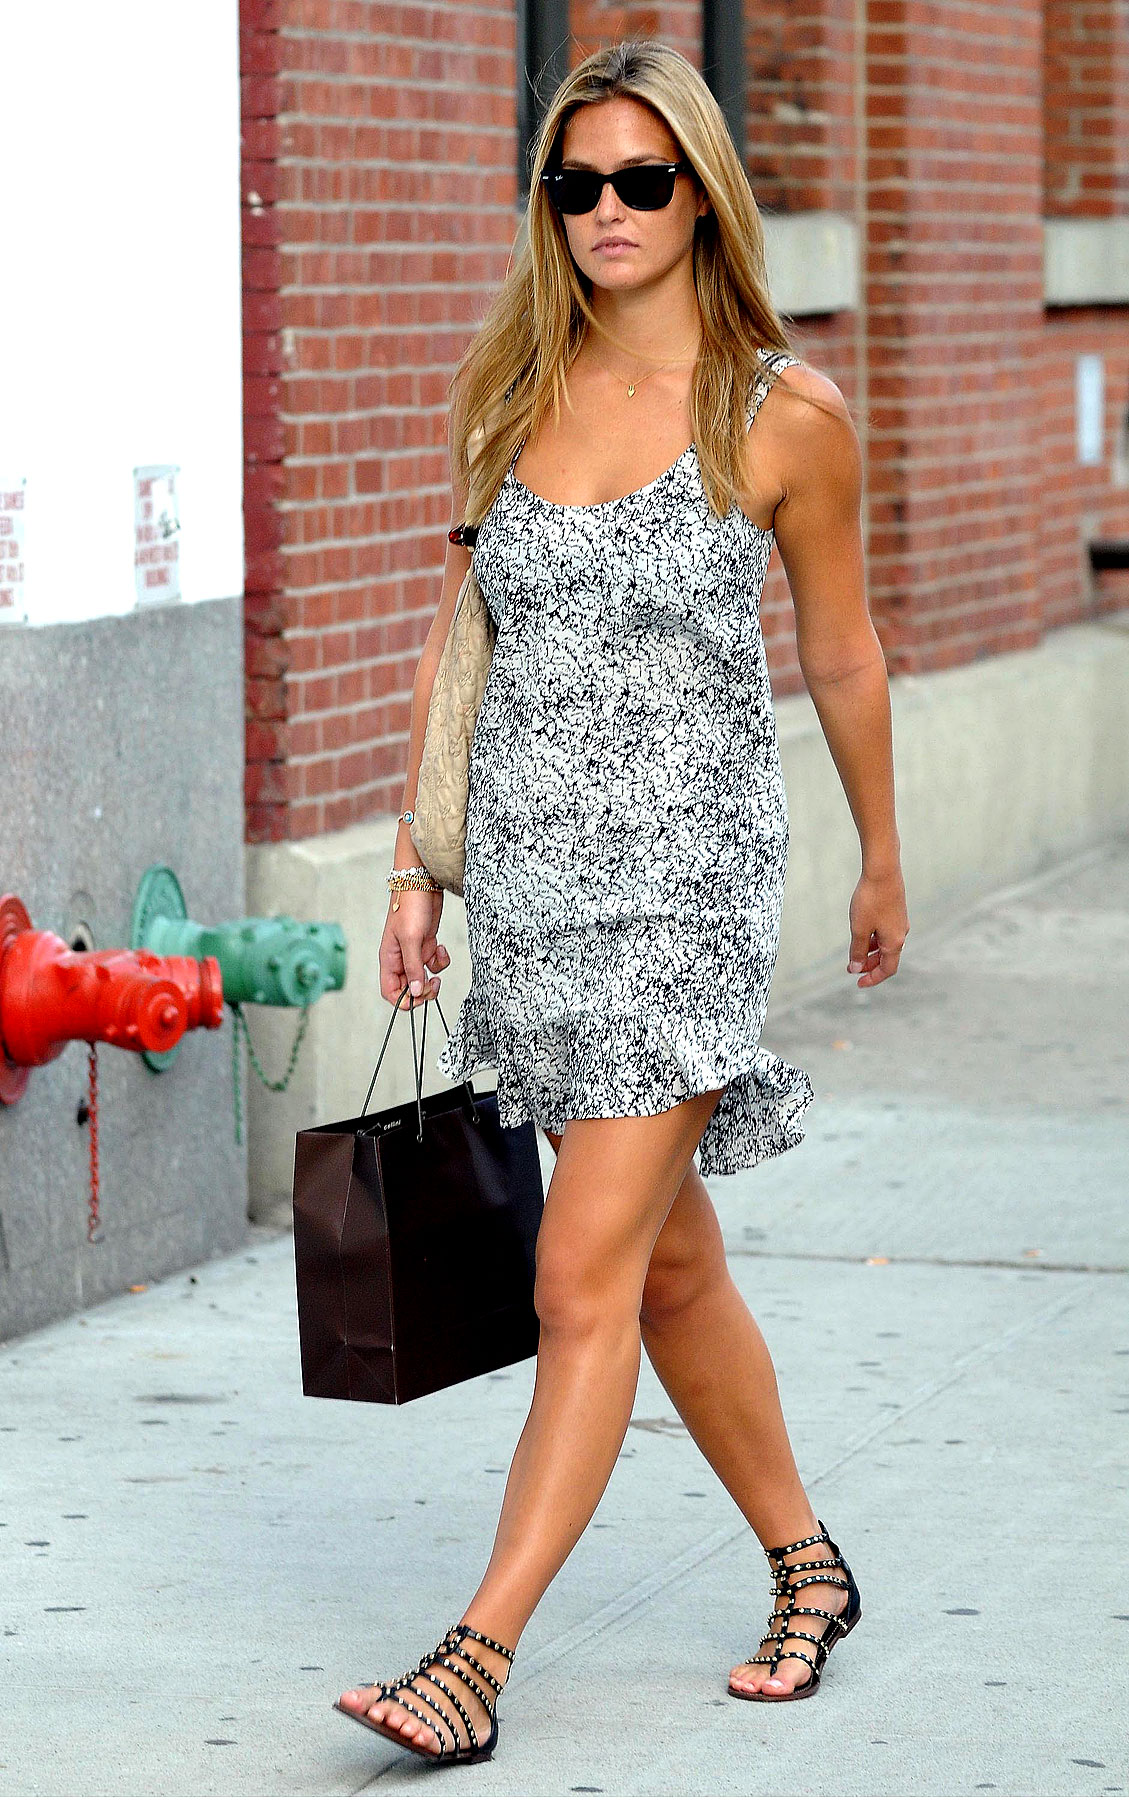 PHOTO GALLERY: Bar Refaeli Lunches at Pastis